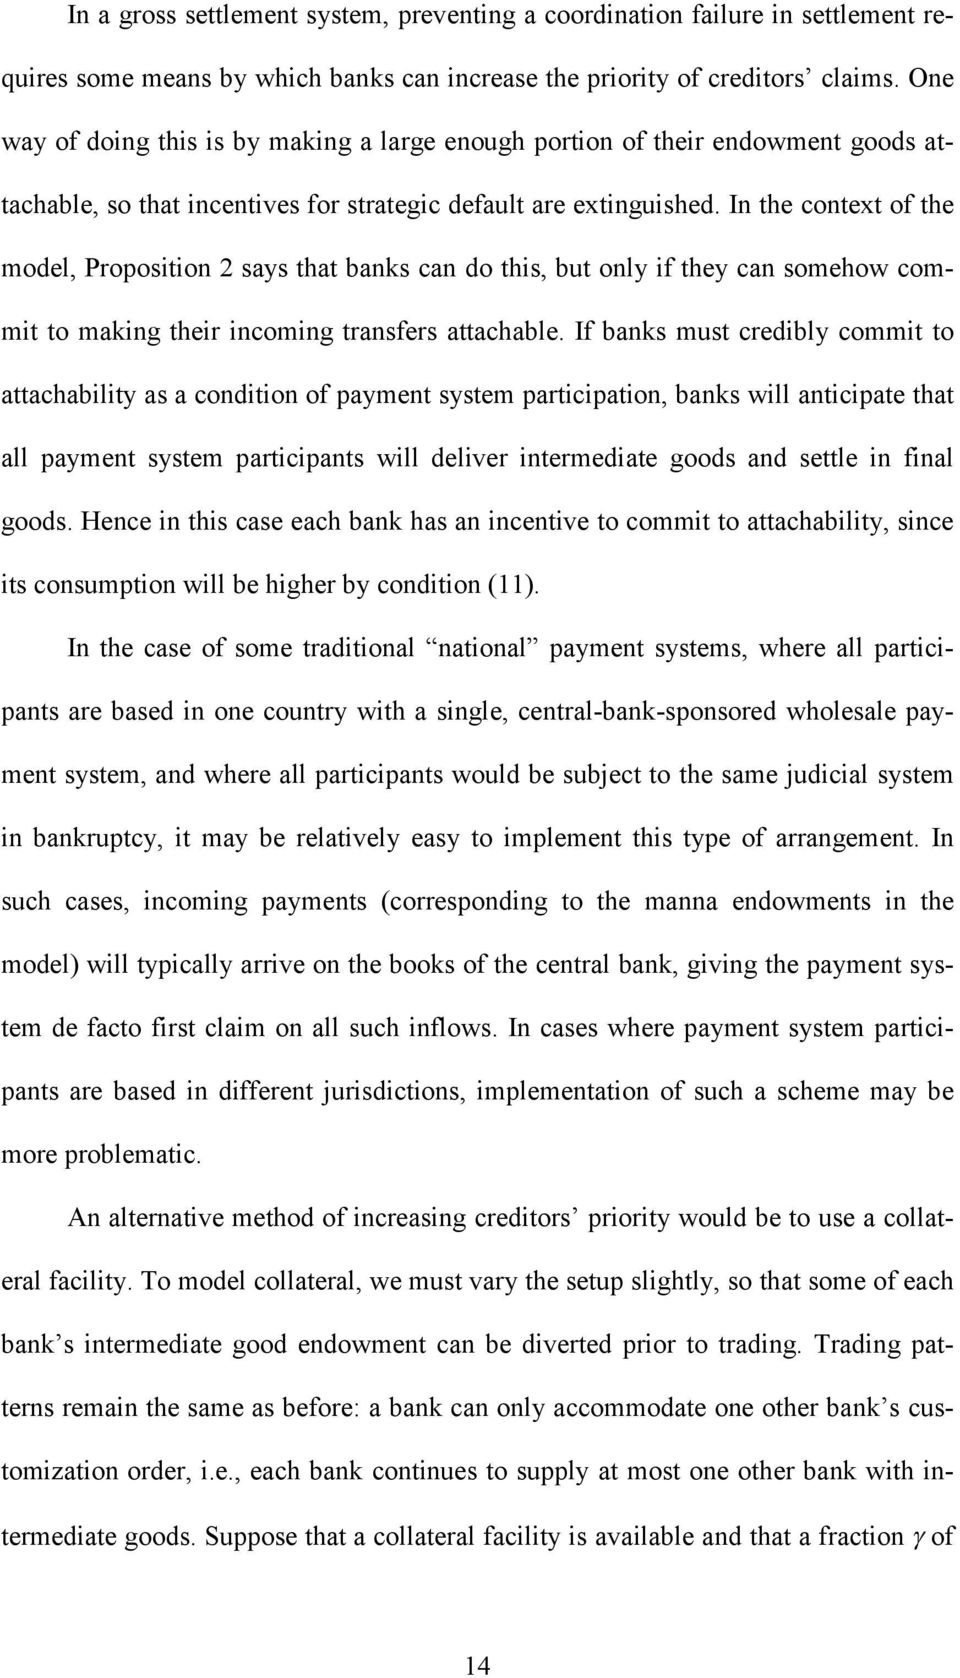 In the context of the model, Proposition 2 says that banks can do this, but only if they can somehow commit to making their incoming transfers attachable.